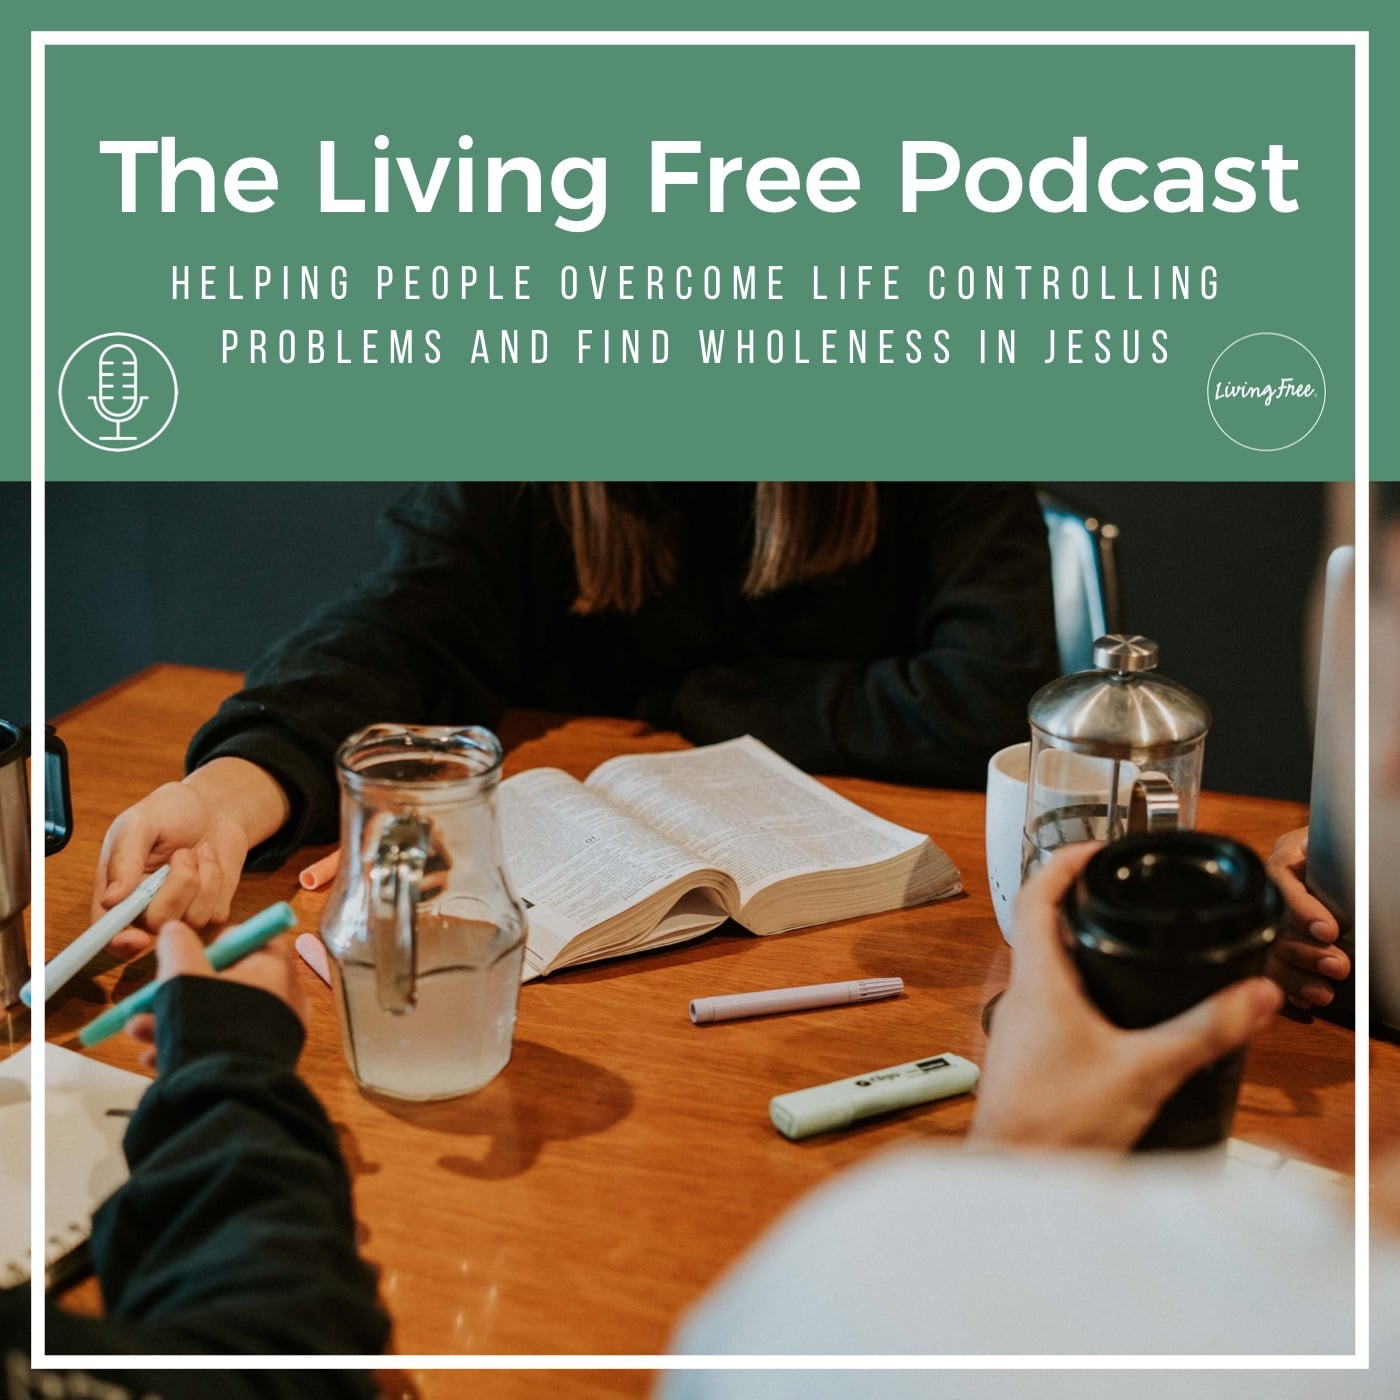 The Living Free Podcast